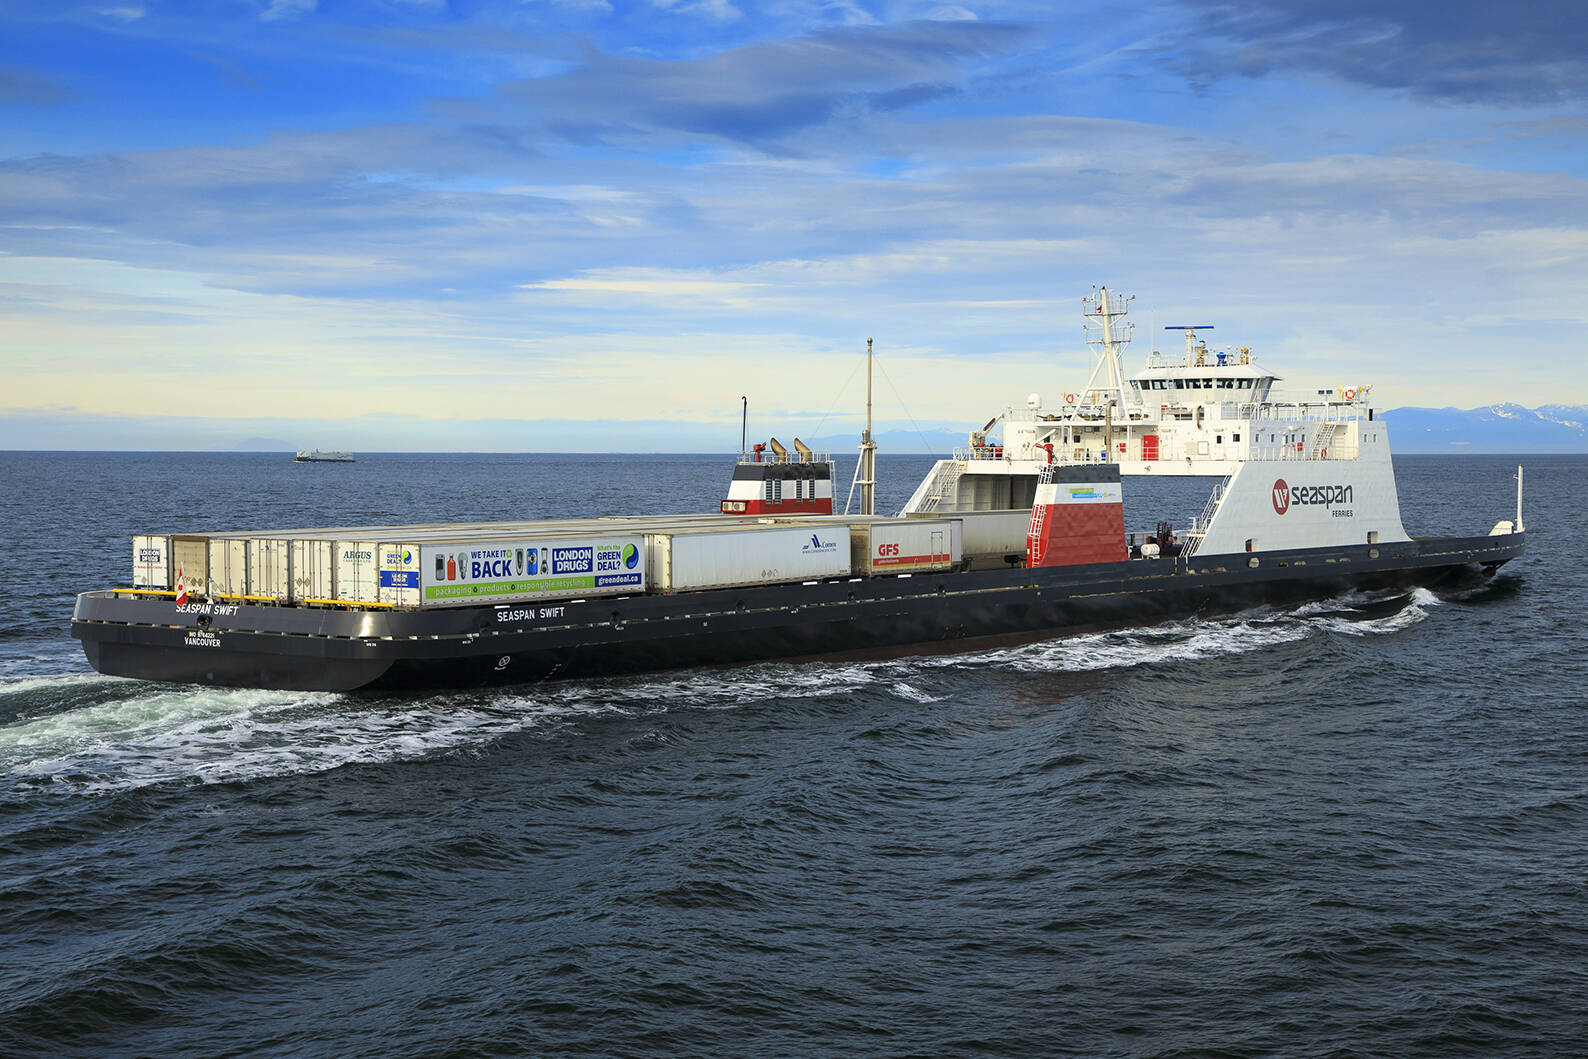 Seaspan Ferries has become the first Canadian marine company to pilot the use of renewable natural gas for its marine fleet. (Seaspan Ferries photo)